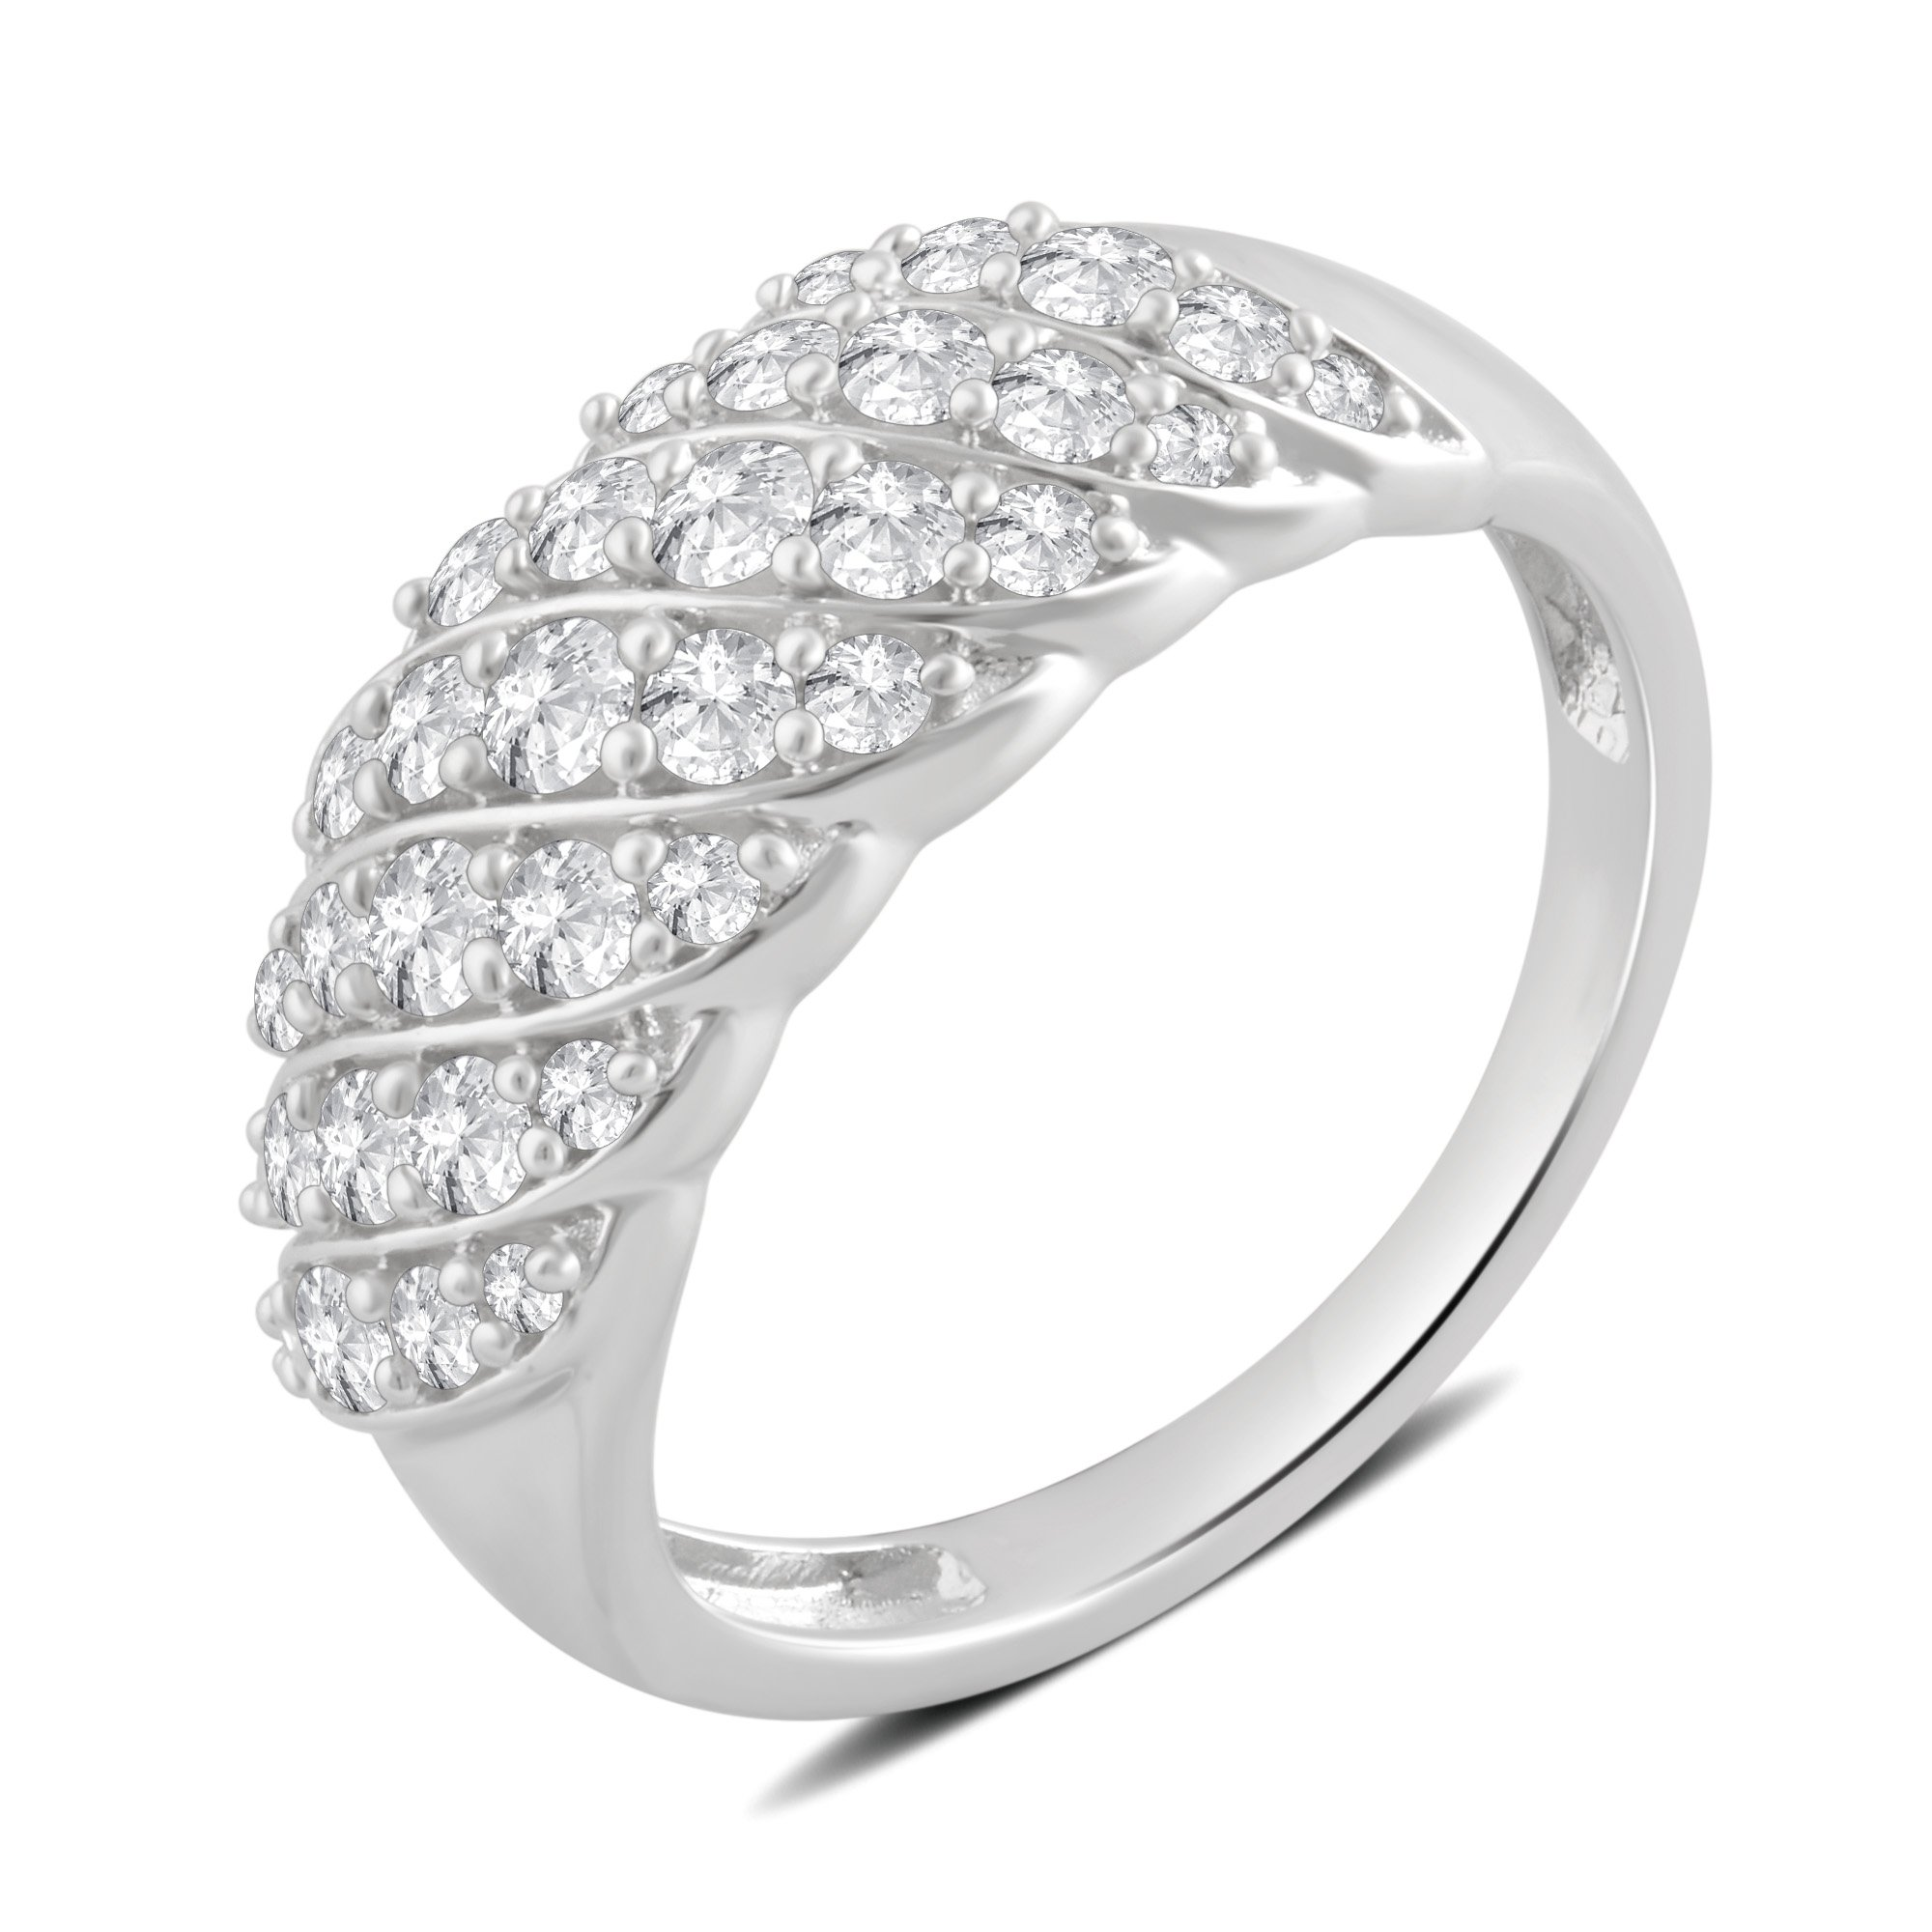 1.00 Cttw Diamond Anniversary Ring in Sterling Silver